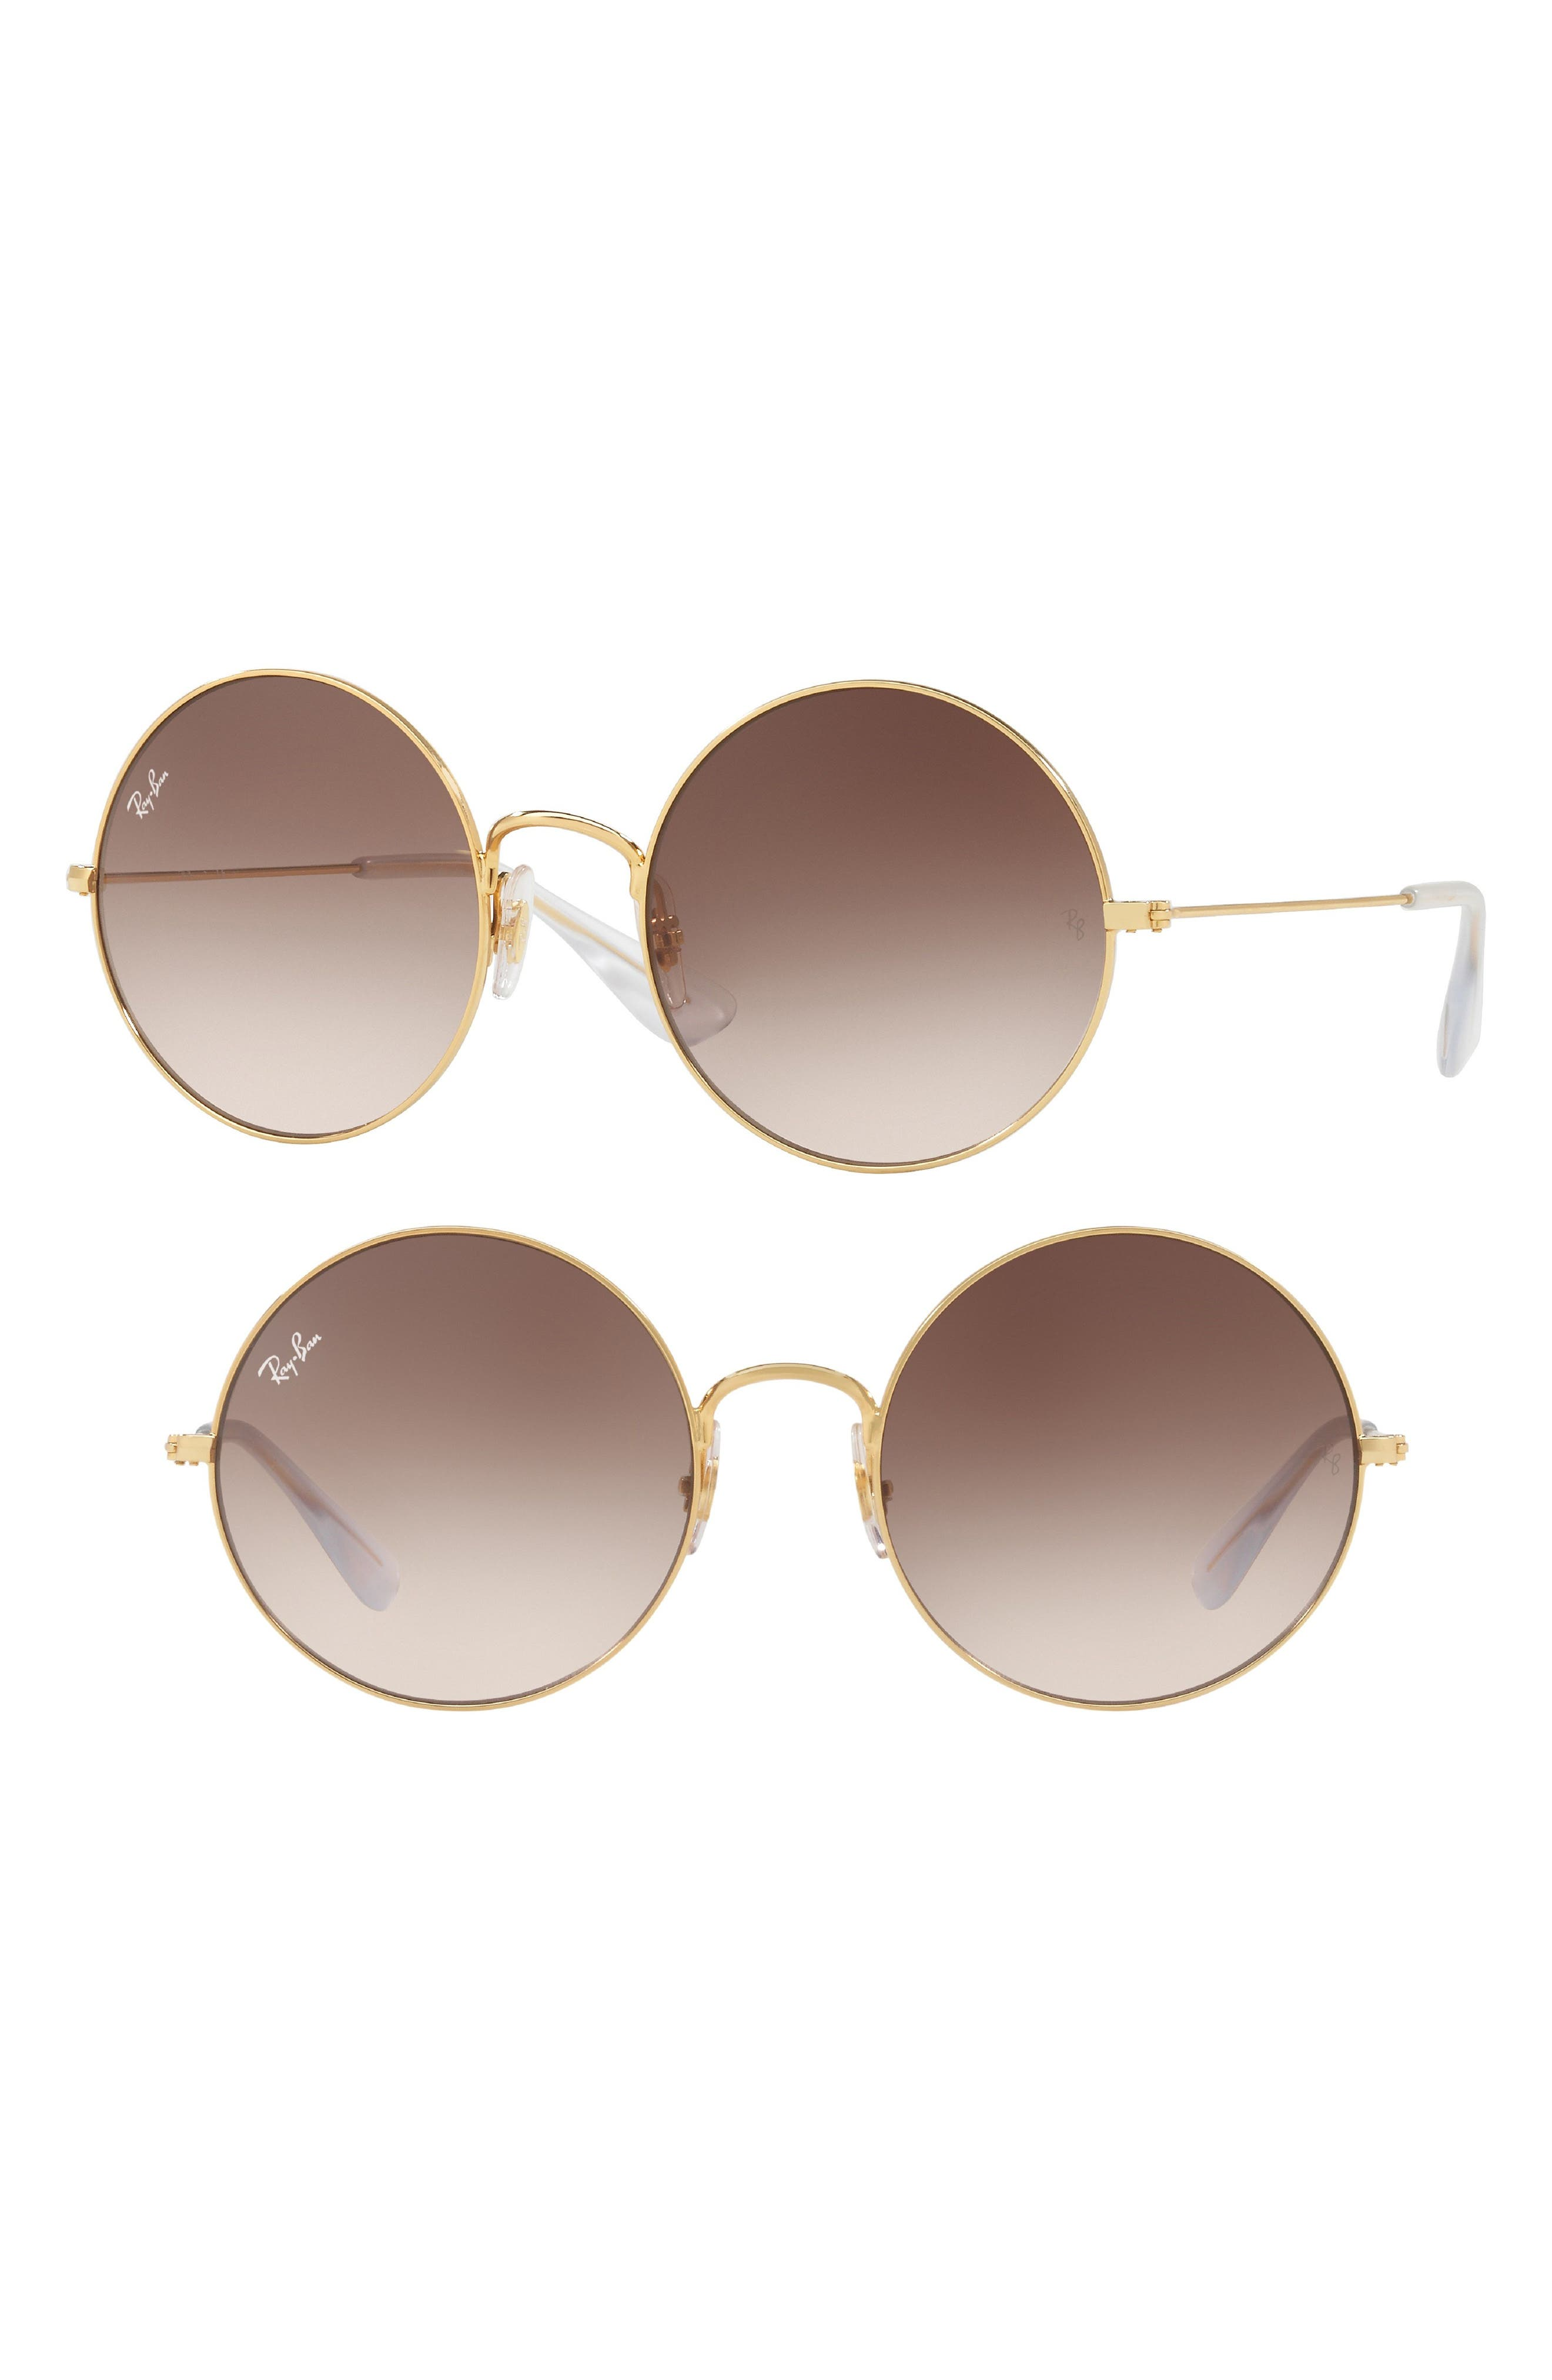 3592 55mm Gradient Round Sunglasses,                             Main thumbnail 1, color,                             GOLD BROWN